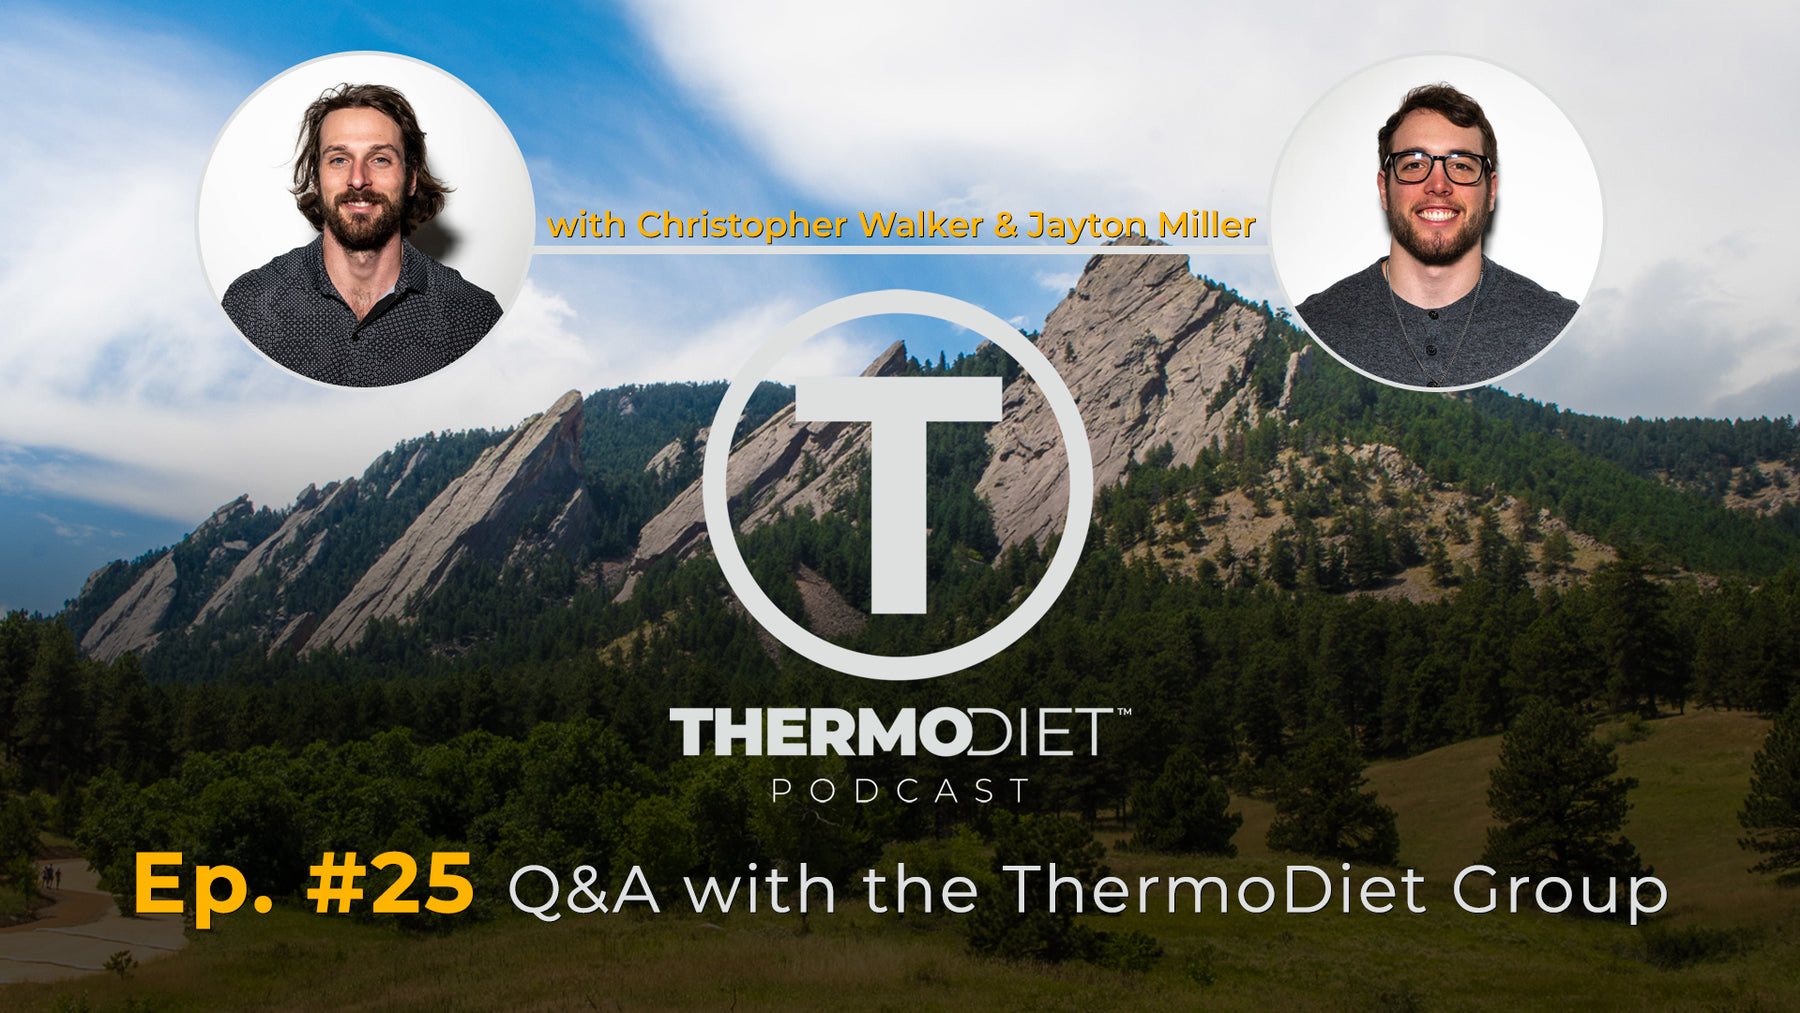 Thermo Diet Podcast Episode 25 - Thermo Diet Group Q&A